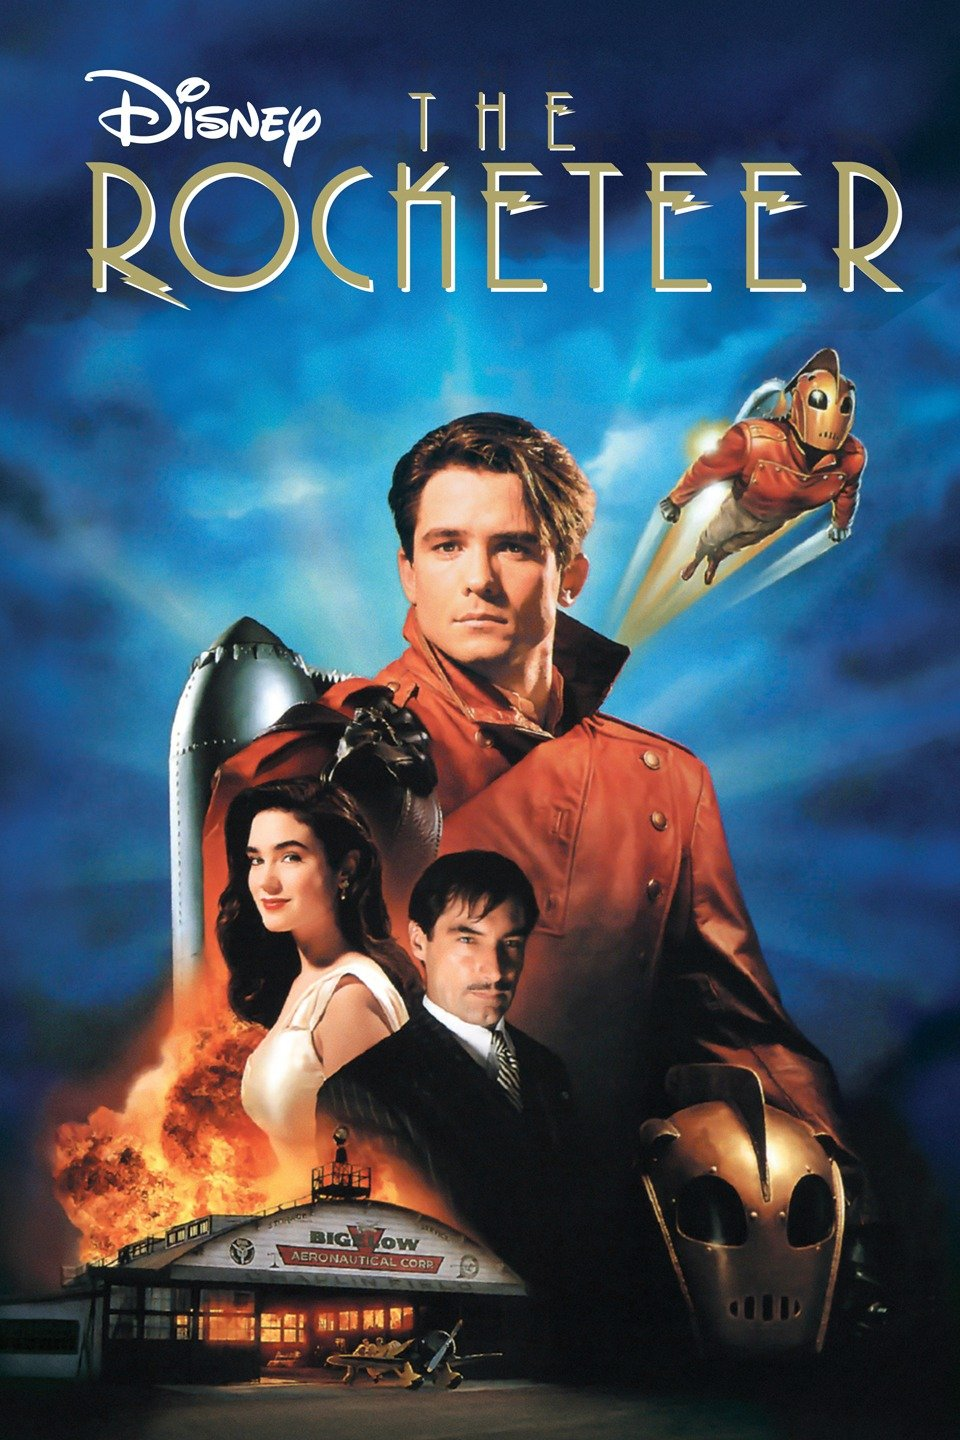 Episode 11: The Rocketeer - A young pilot stumbles onto a prototype jetpack that allows him to become a high flying masked hero.Available: 8/29